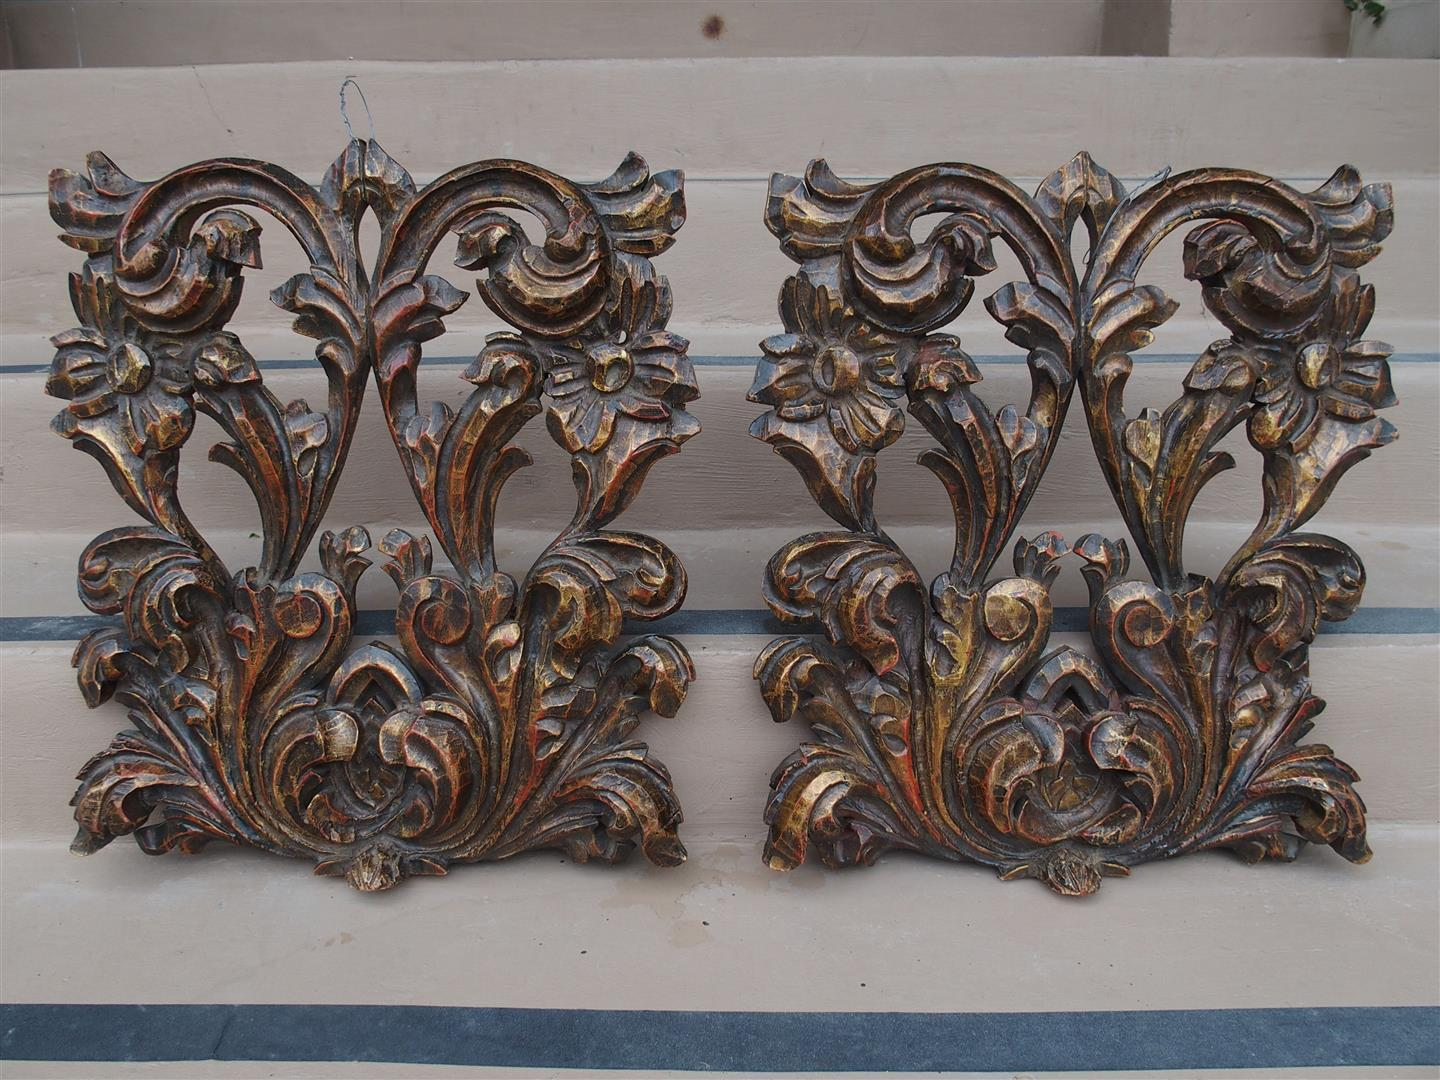 A Pair of Polychromed Wall Carvings from Spain, 1900s